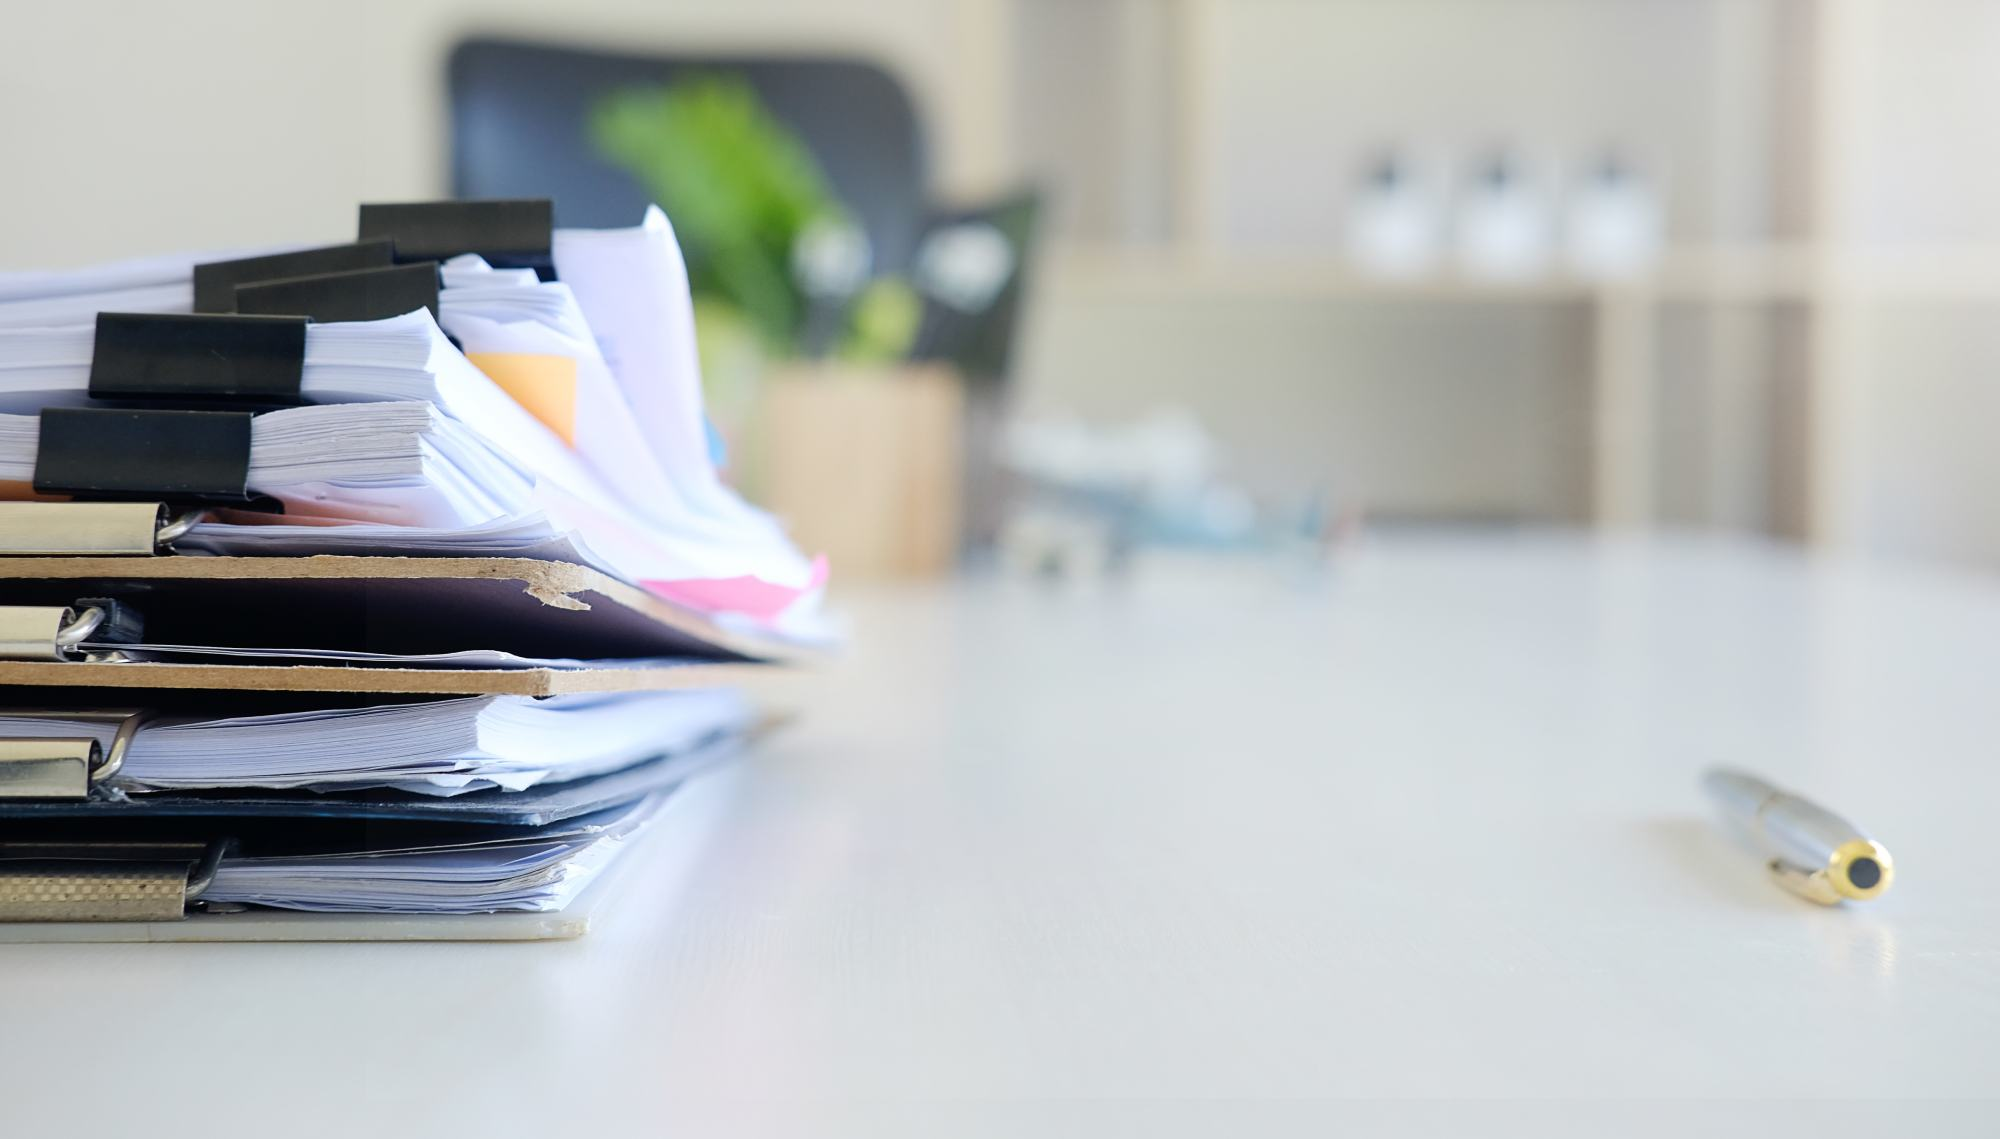 legal documents on a desk